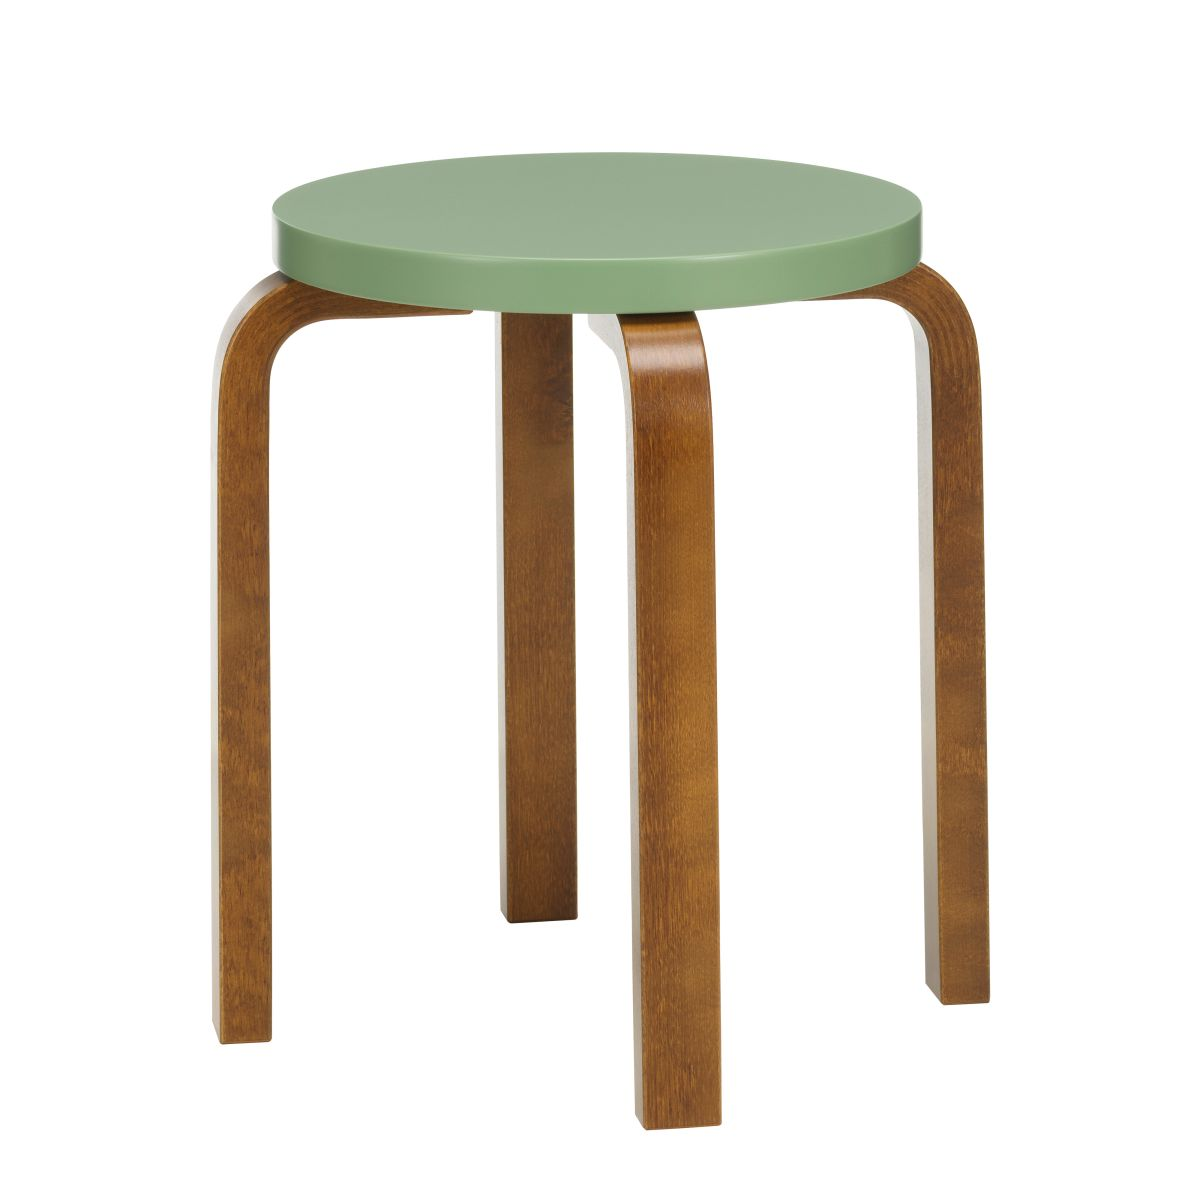 Stool_E60_Walnut_Stain_Pale_Green_Lacquer_F-2243622